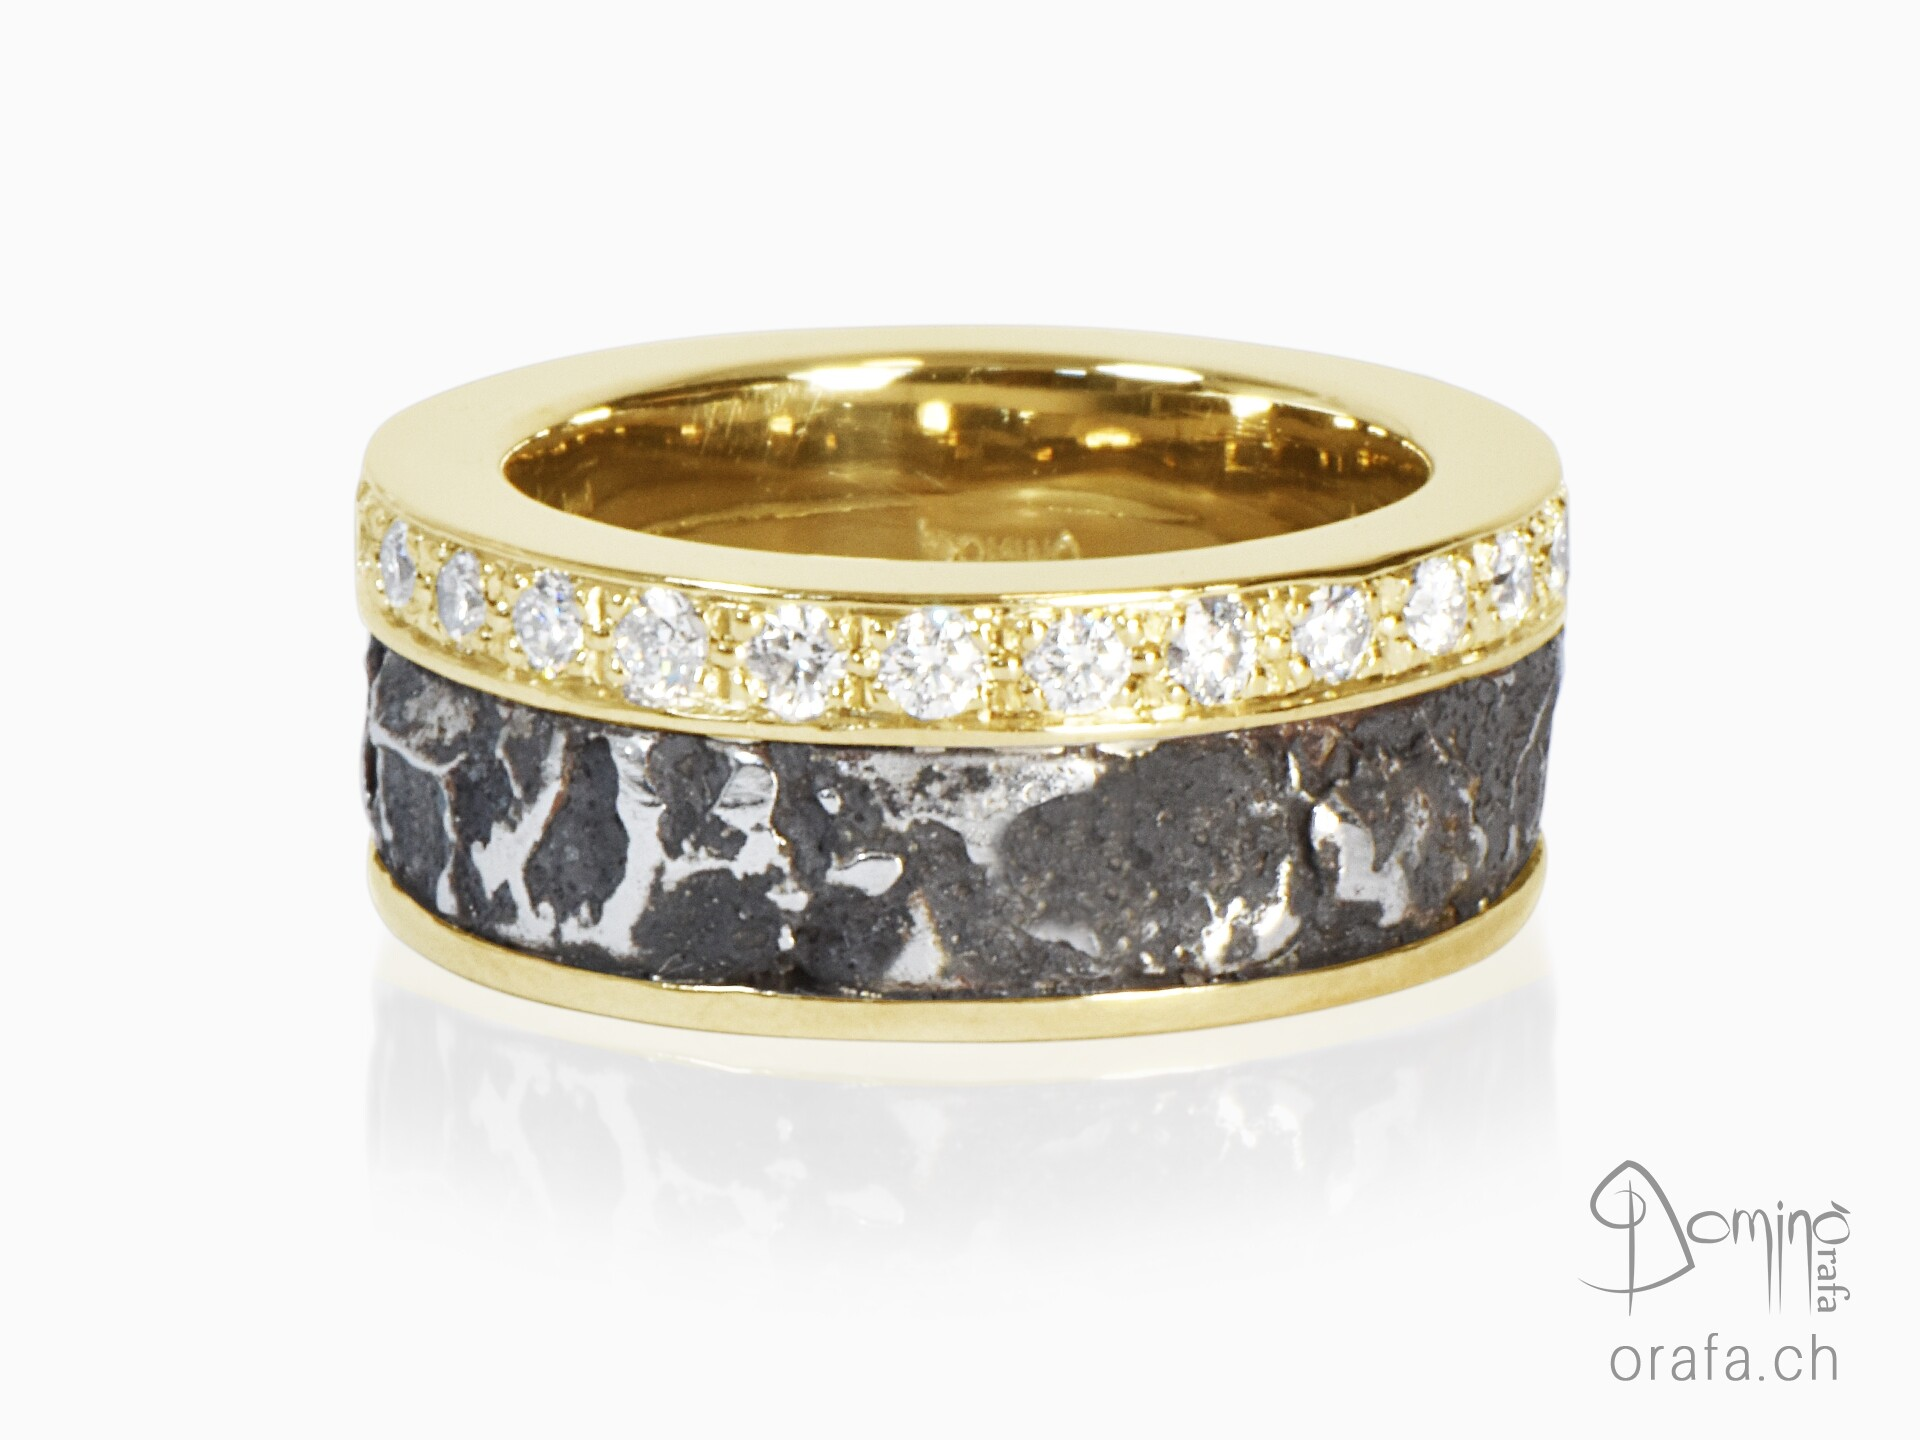 Ferro prezioso ring with diamonds